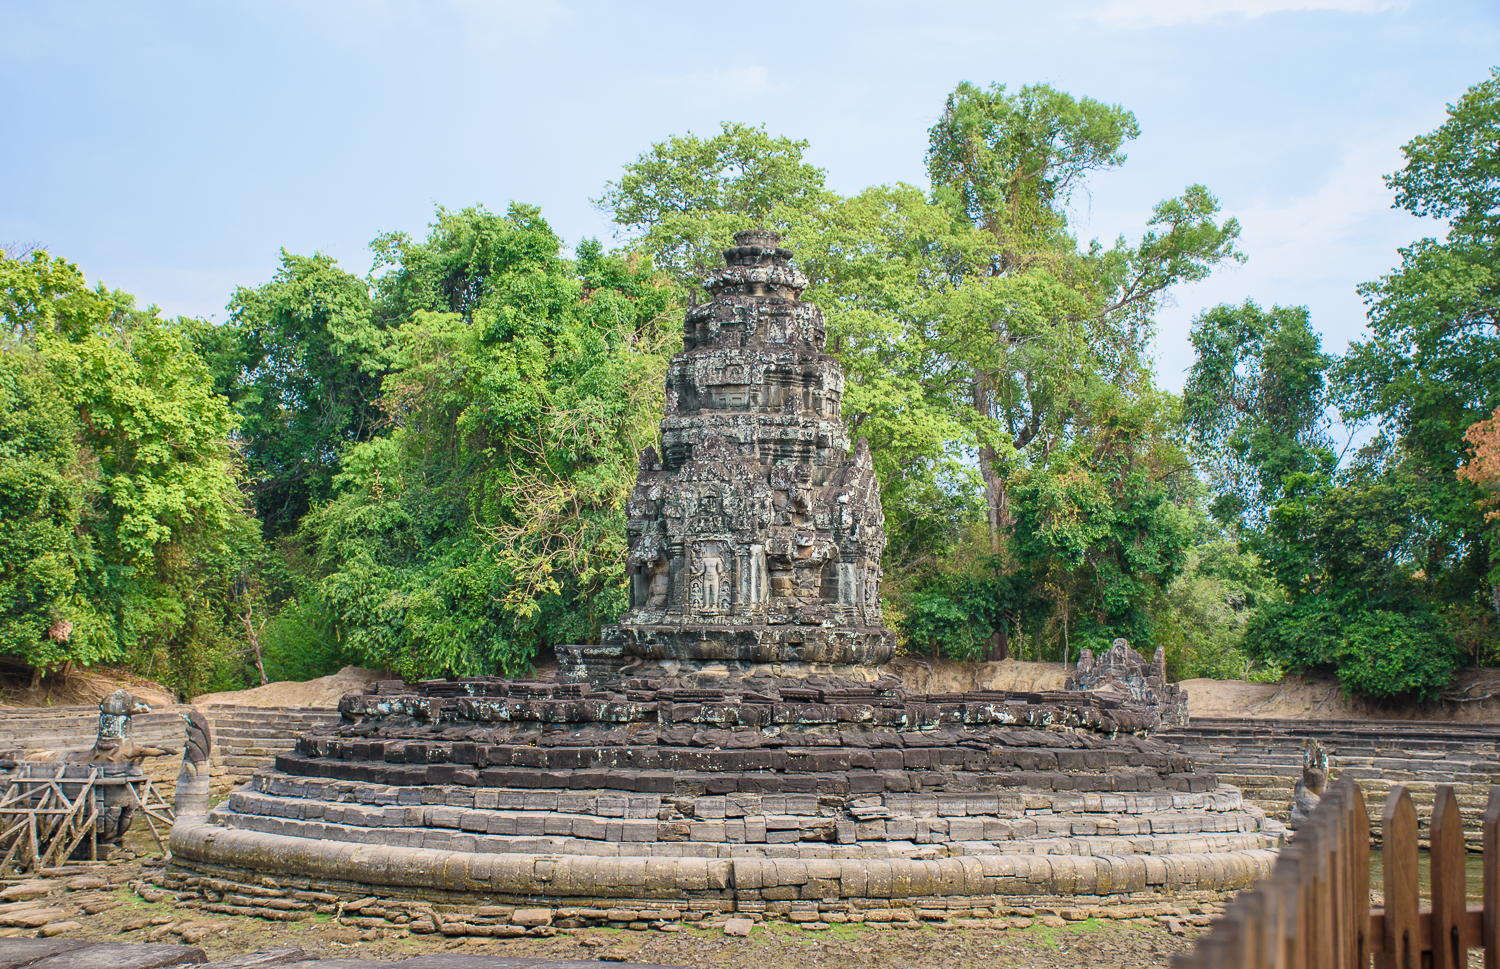 visiting temples in cambodia. where to visit in cambodia. Banteay Sri, Banteay Samre, Preah Khan, Ta Som, and Neak Pean